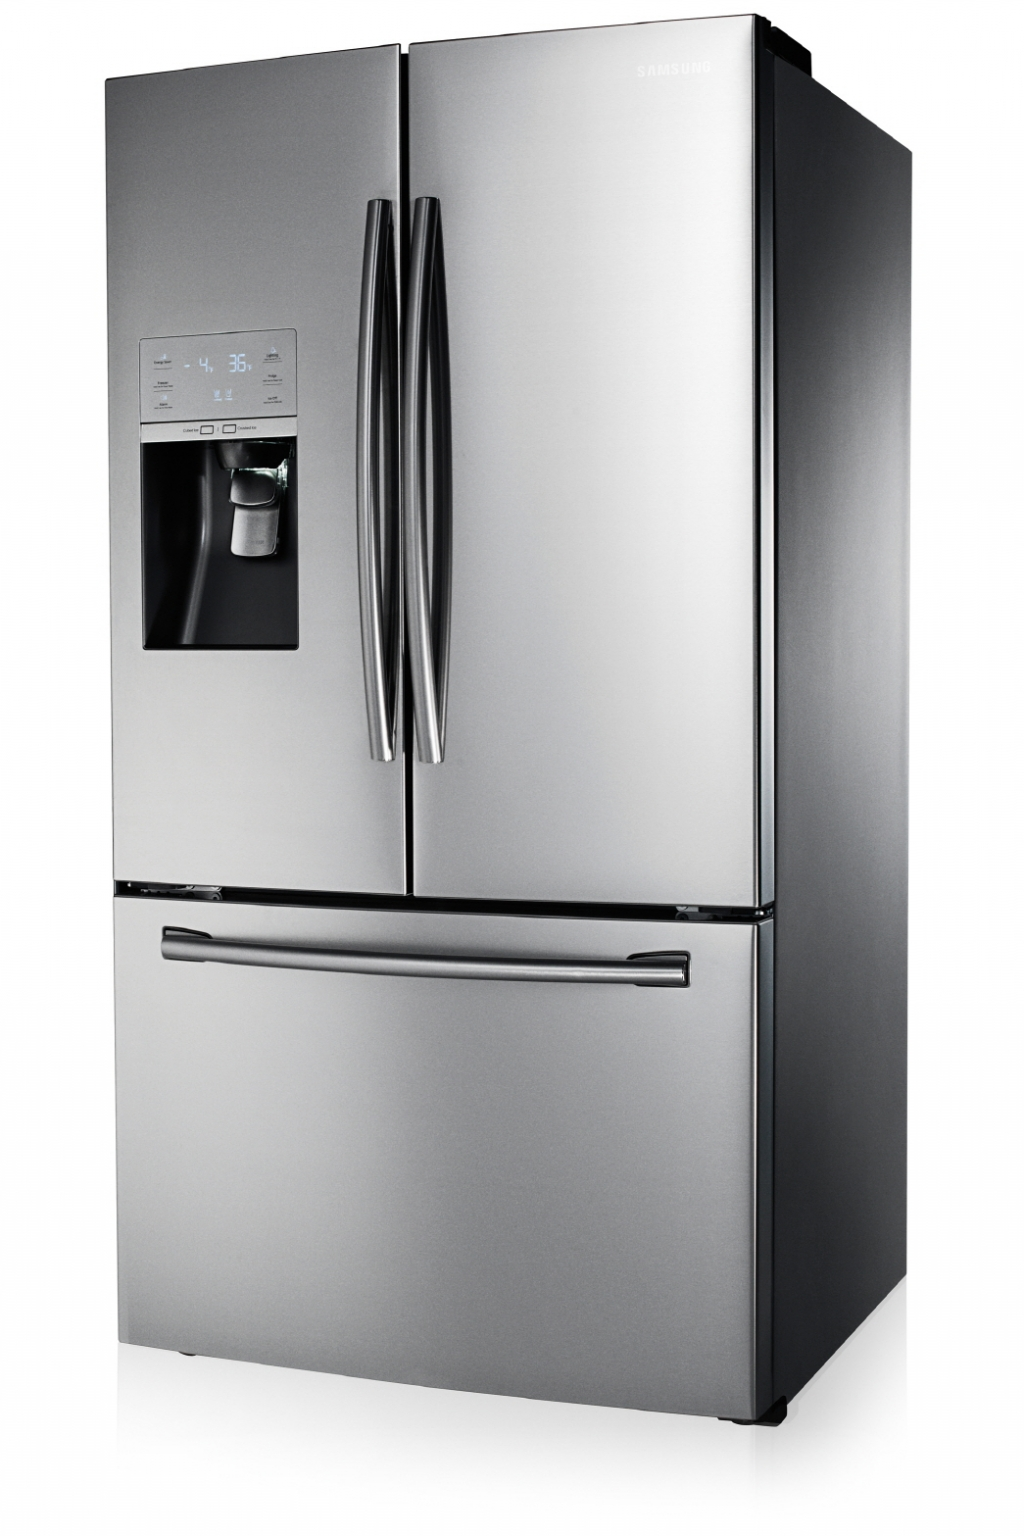 Samsung French Door Refrigerator Named as Green Product in US